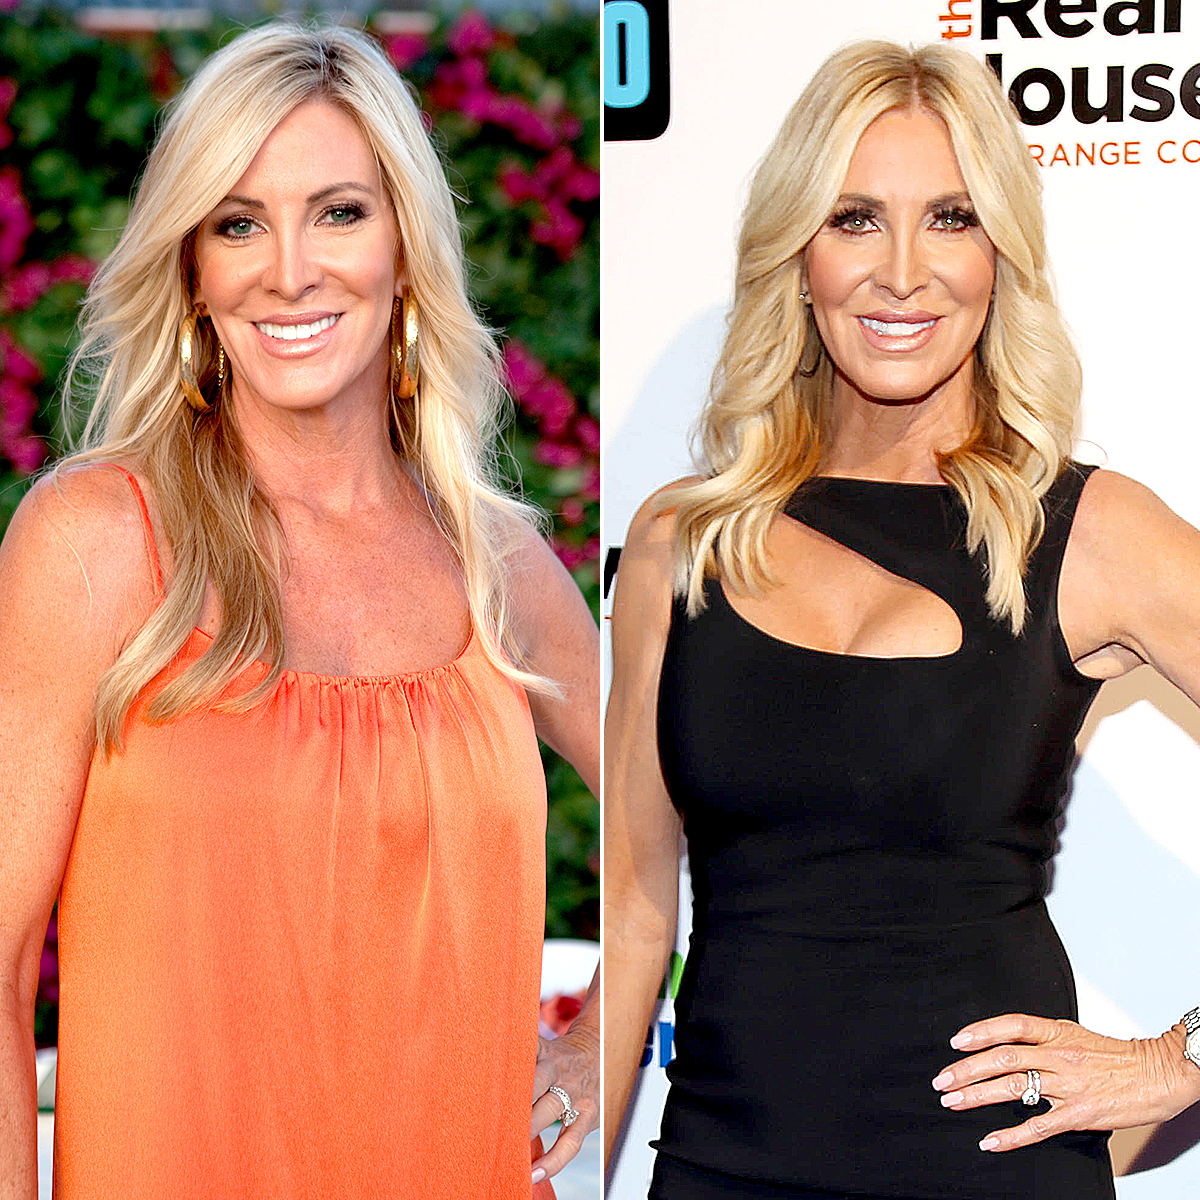 b24d85134ce6 Former 'RHOC' Stars: Where Are They Now?